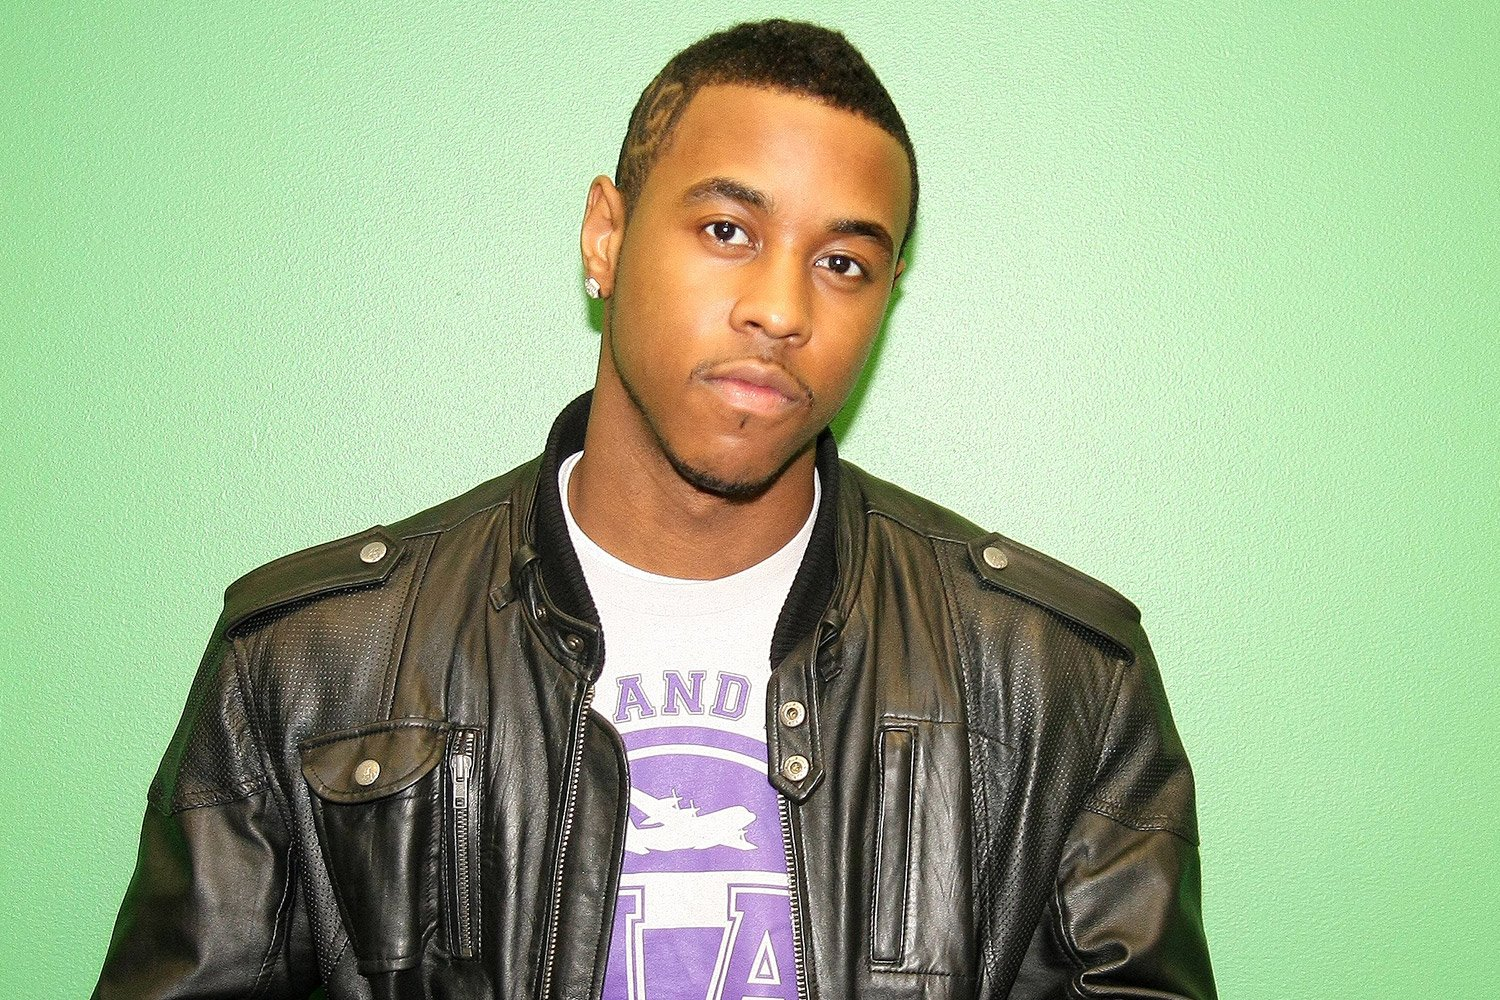 Jeremih Finally Leaves The Hospital After Terrible Case Of COVID-19 That Almost Lost Him His Life – Check Out His Statement!